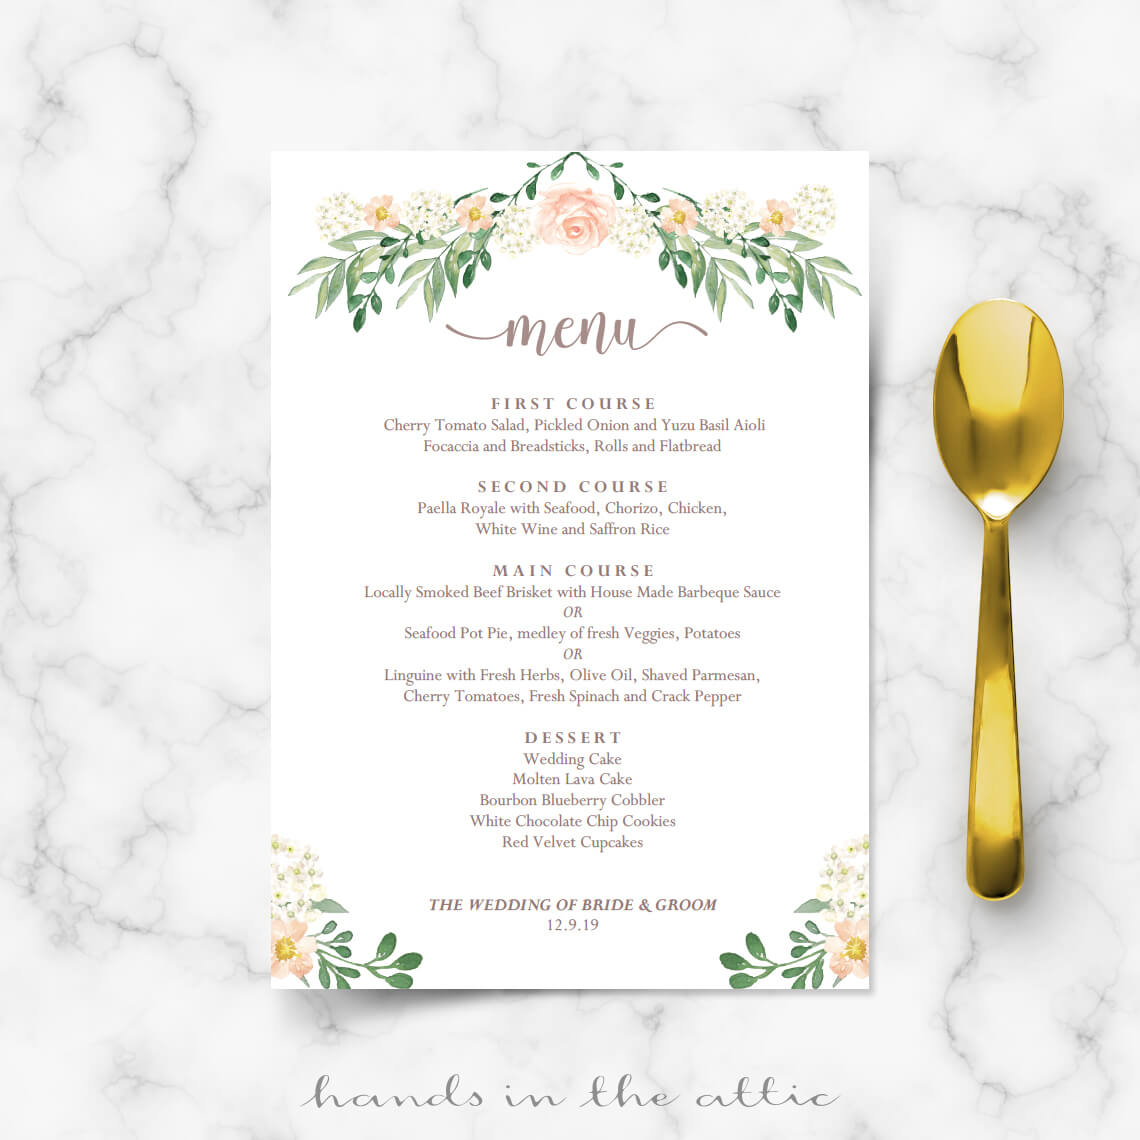 Wedding dinner menu printable templates hands in the attic for Menu templates for weddings